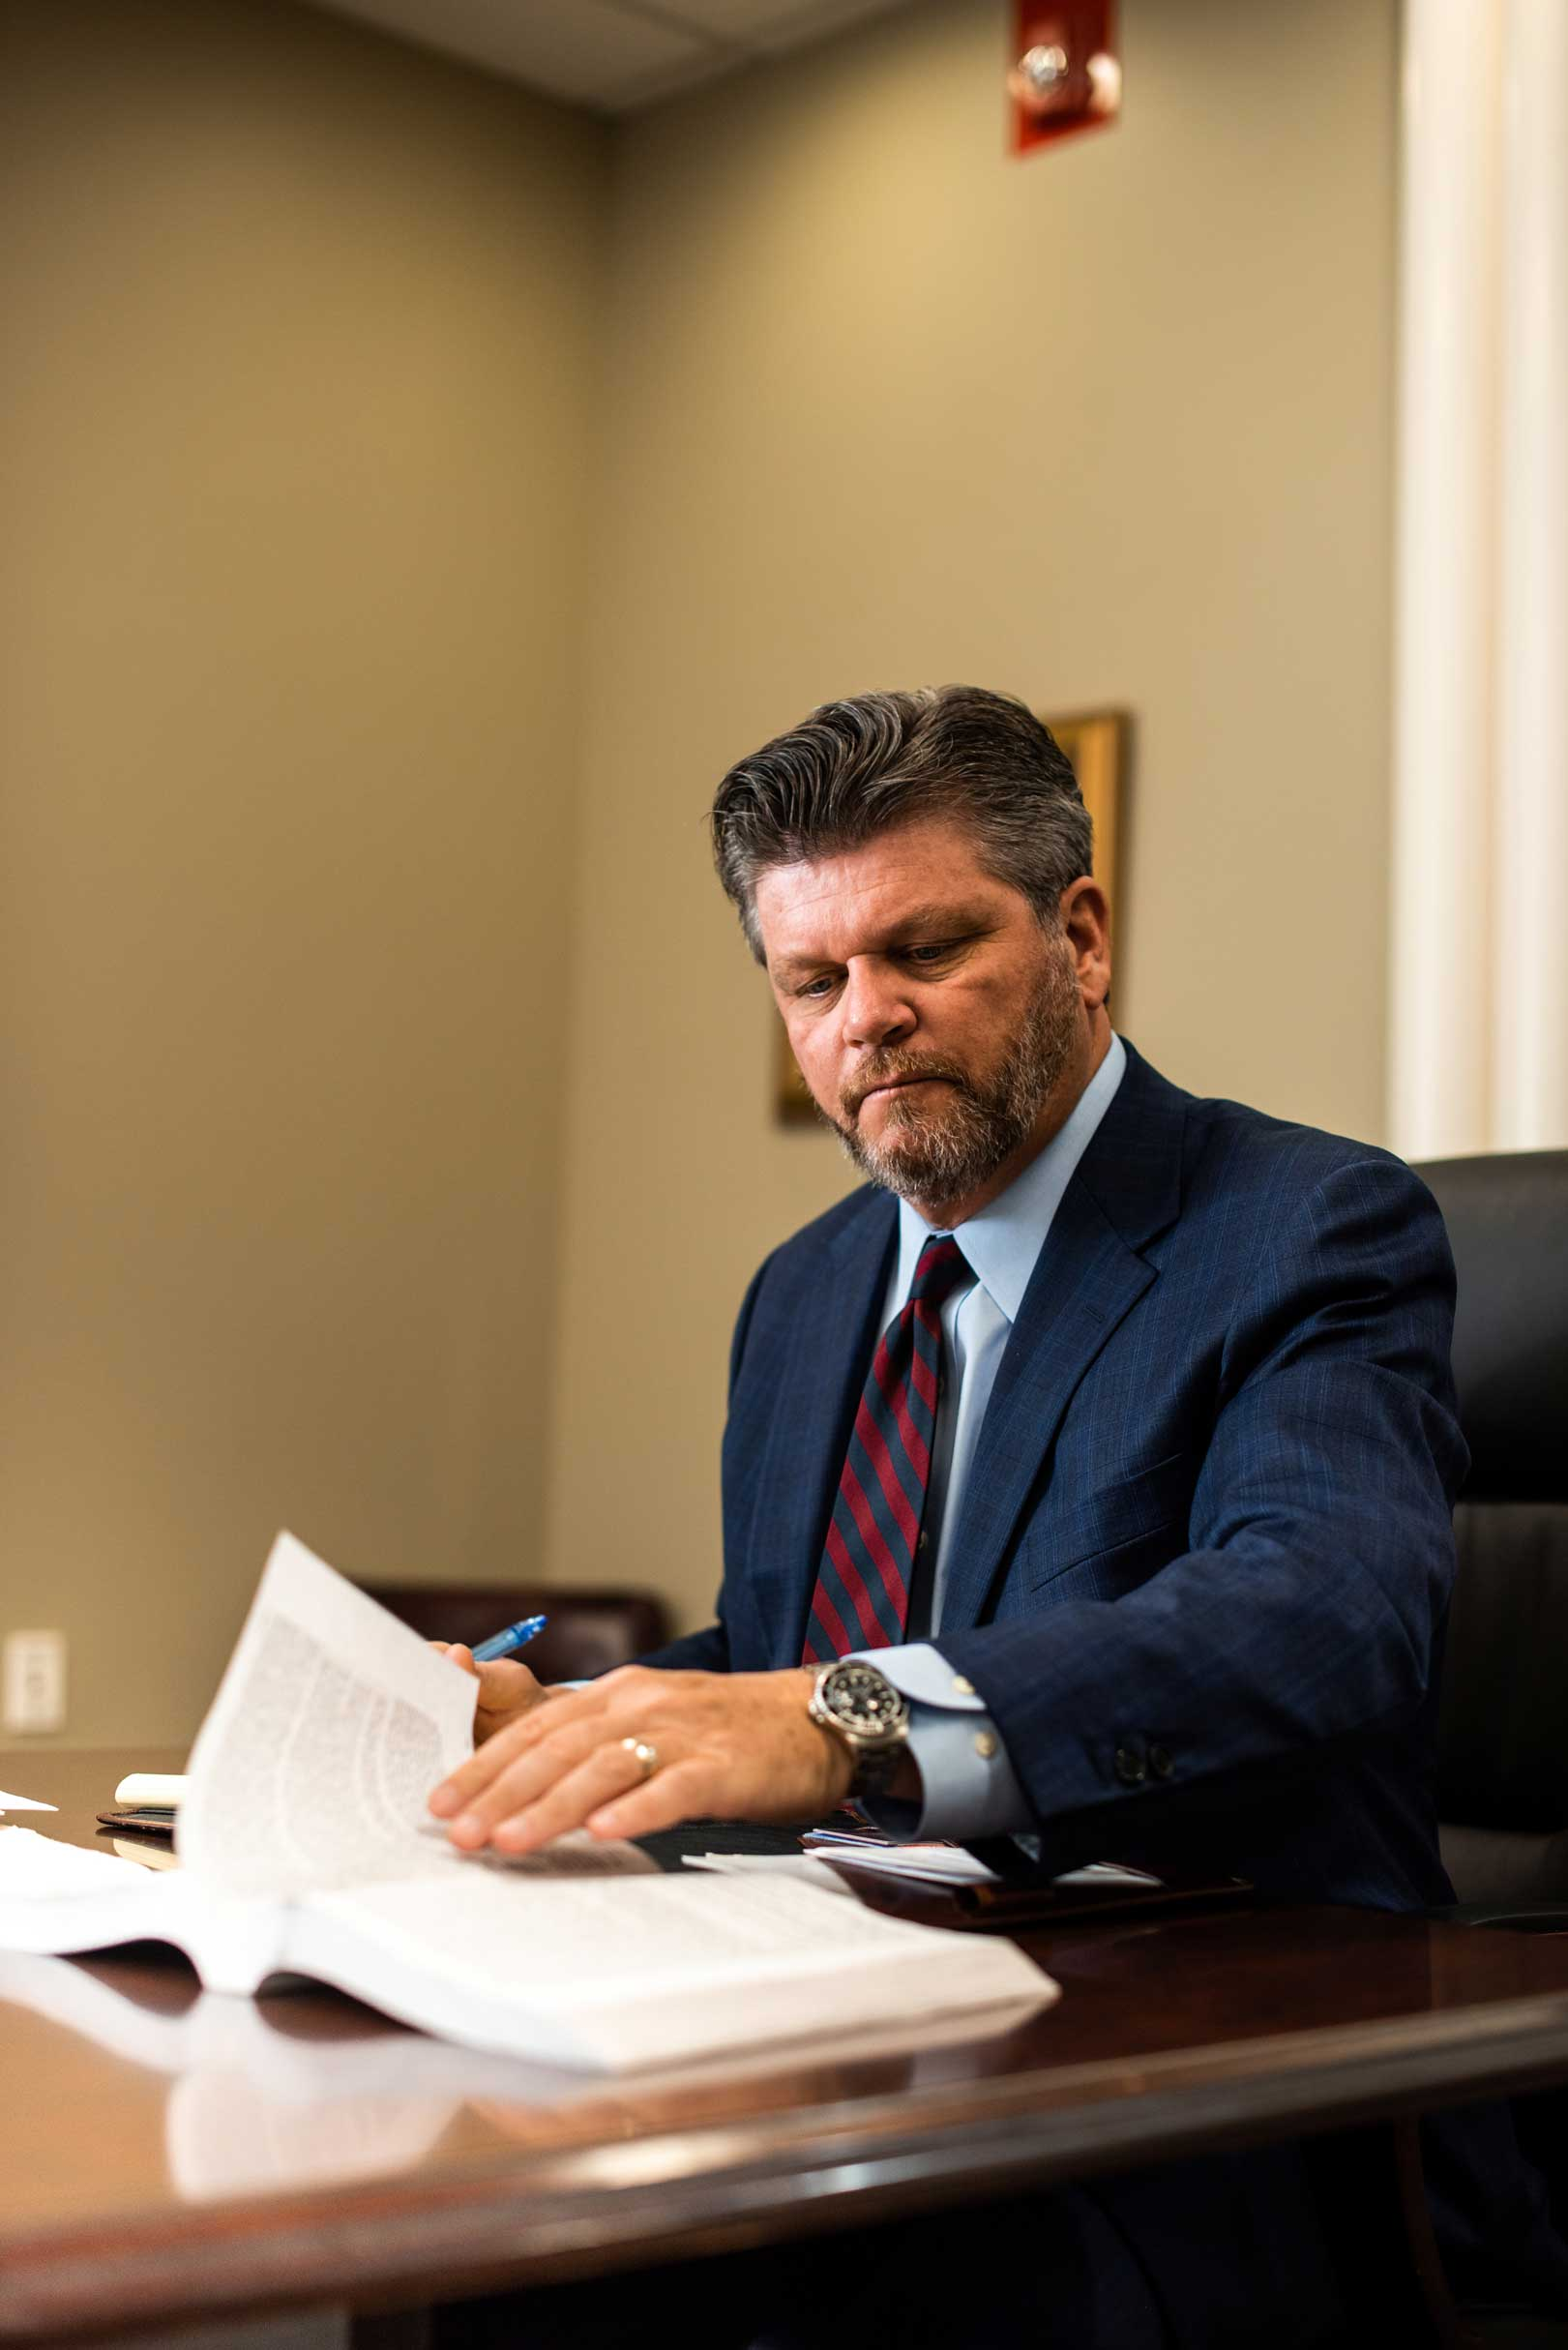 John Harralson looking over some documents in the conference room